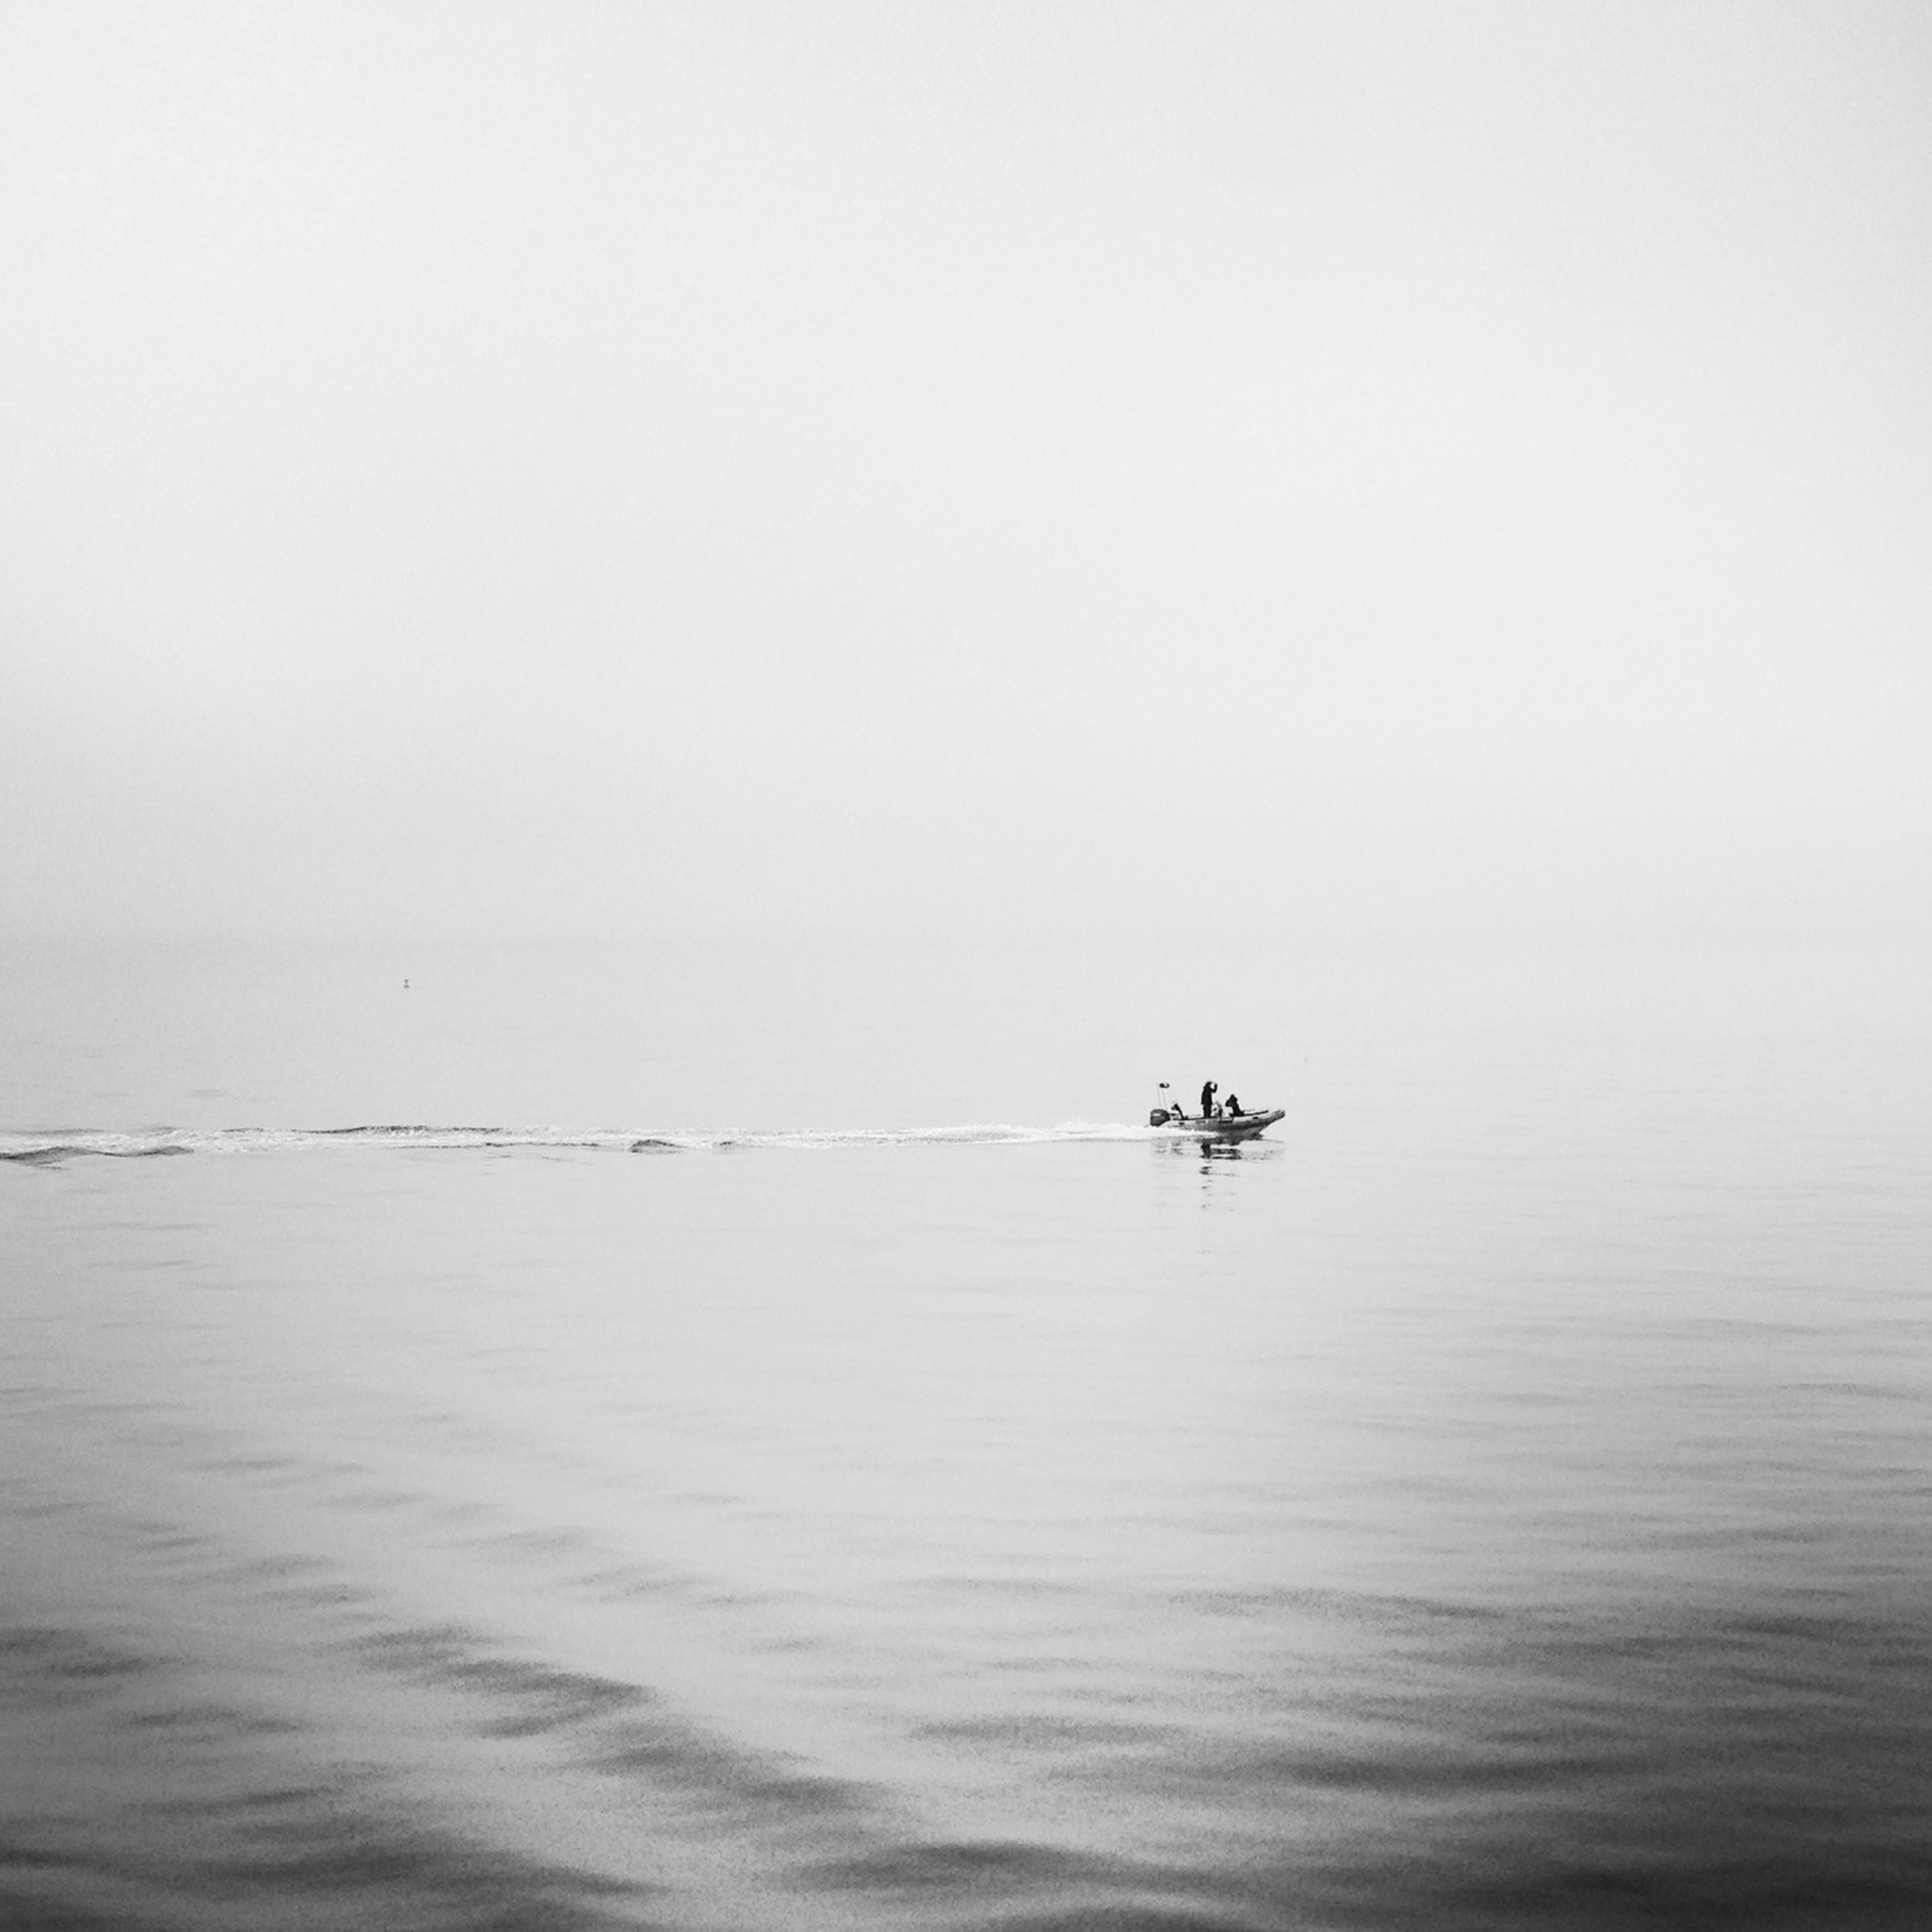 sea, transportation, nautical vessel, water, copy space, mode of transport, horizon over water, clear sky, boat, waterfront, tranquility, tranquil scene, scenics, beauty in nature, nature, sailing, travel, day, outdoors, sky